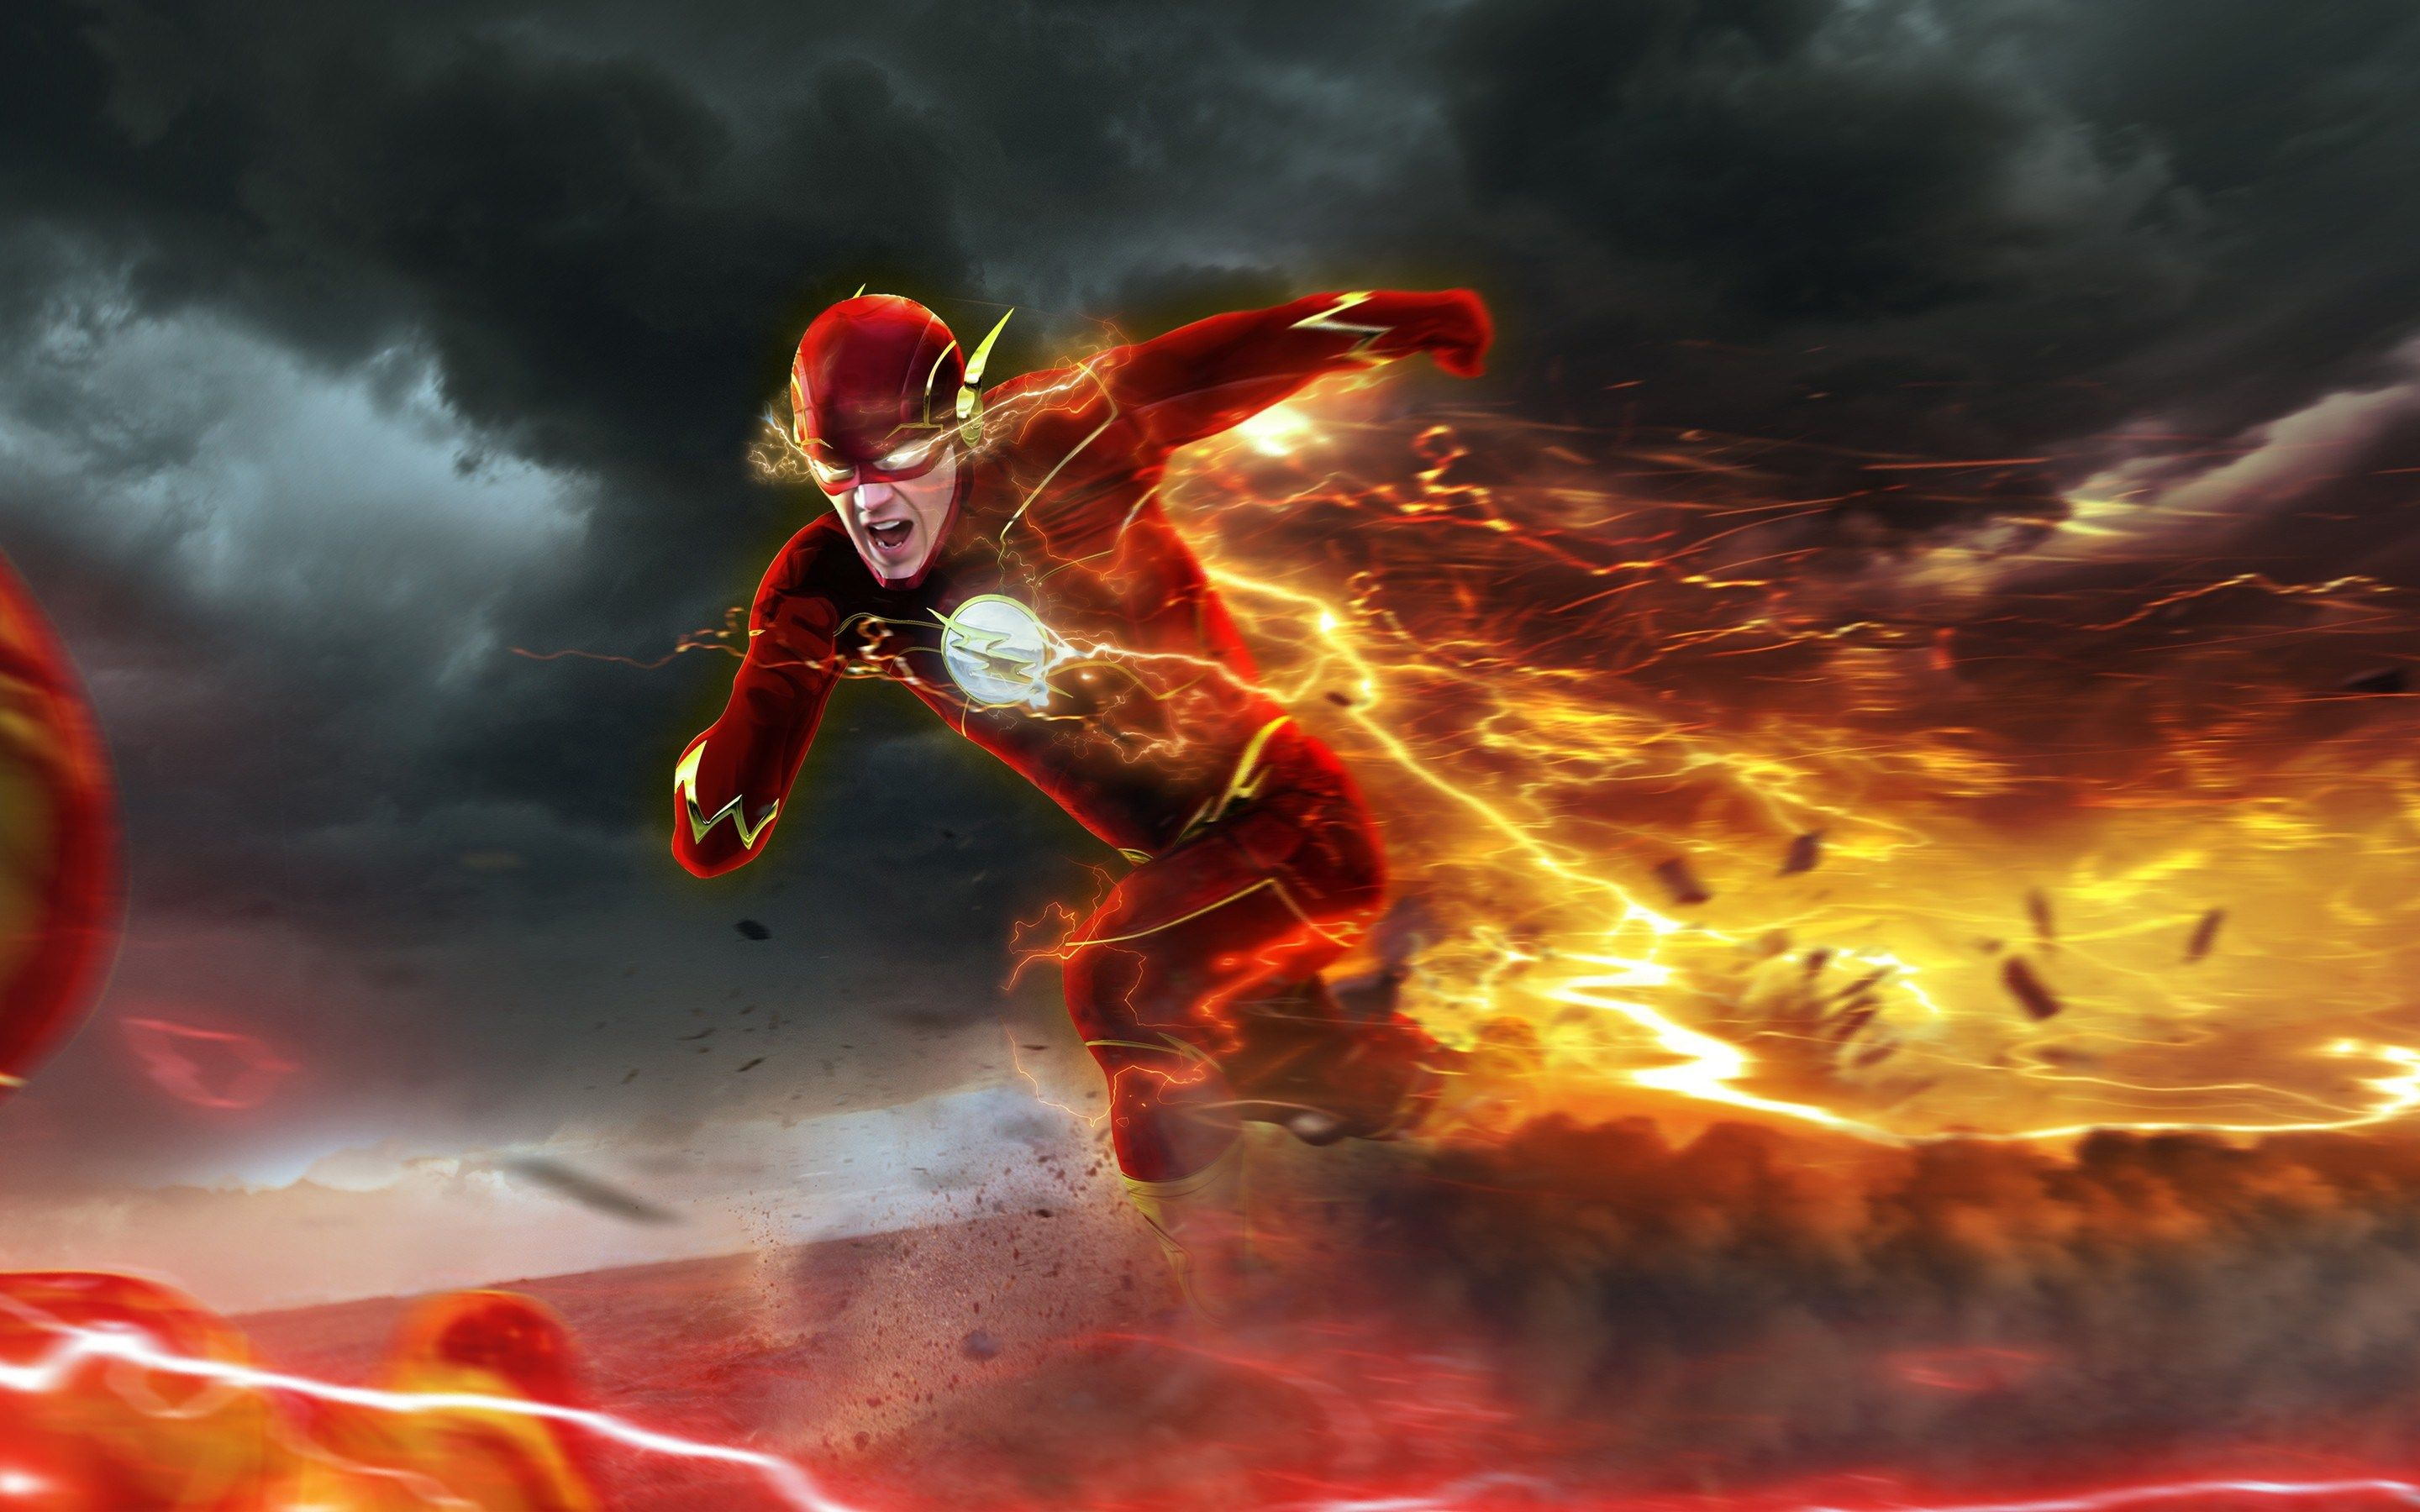 Barry Allen In Flash Hd Wallpaper The Flash Flash Tv Series